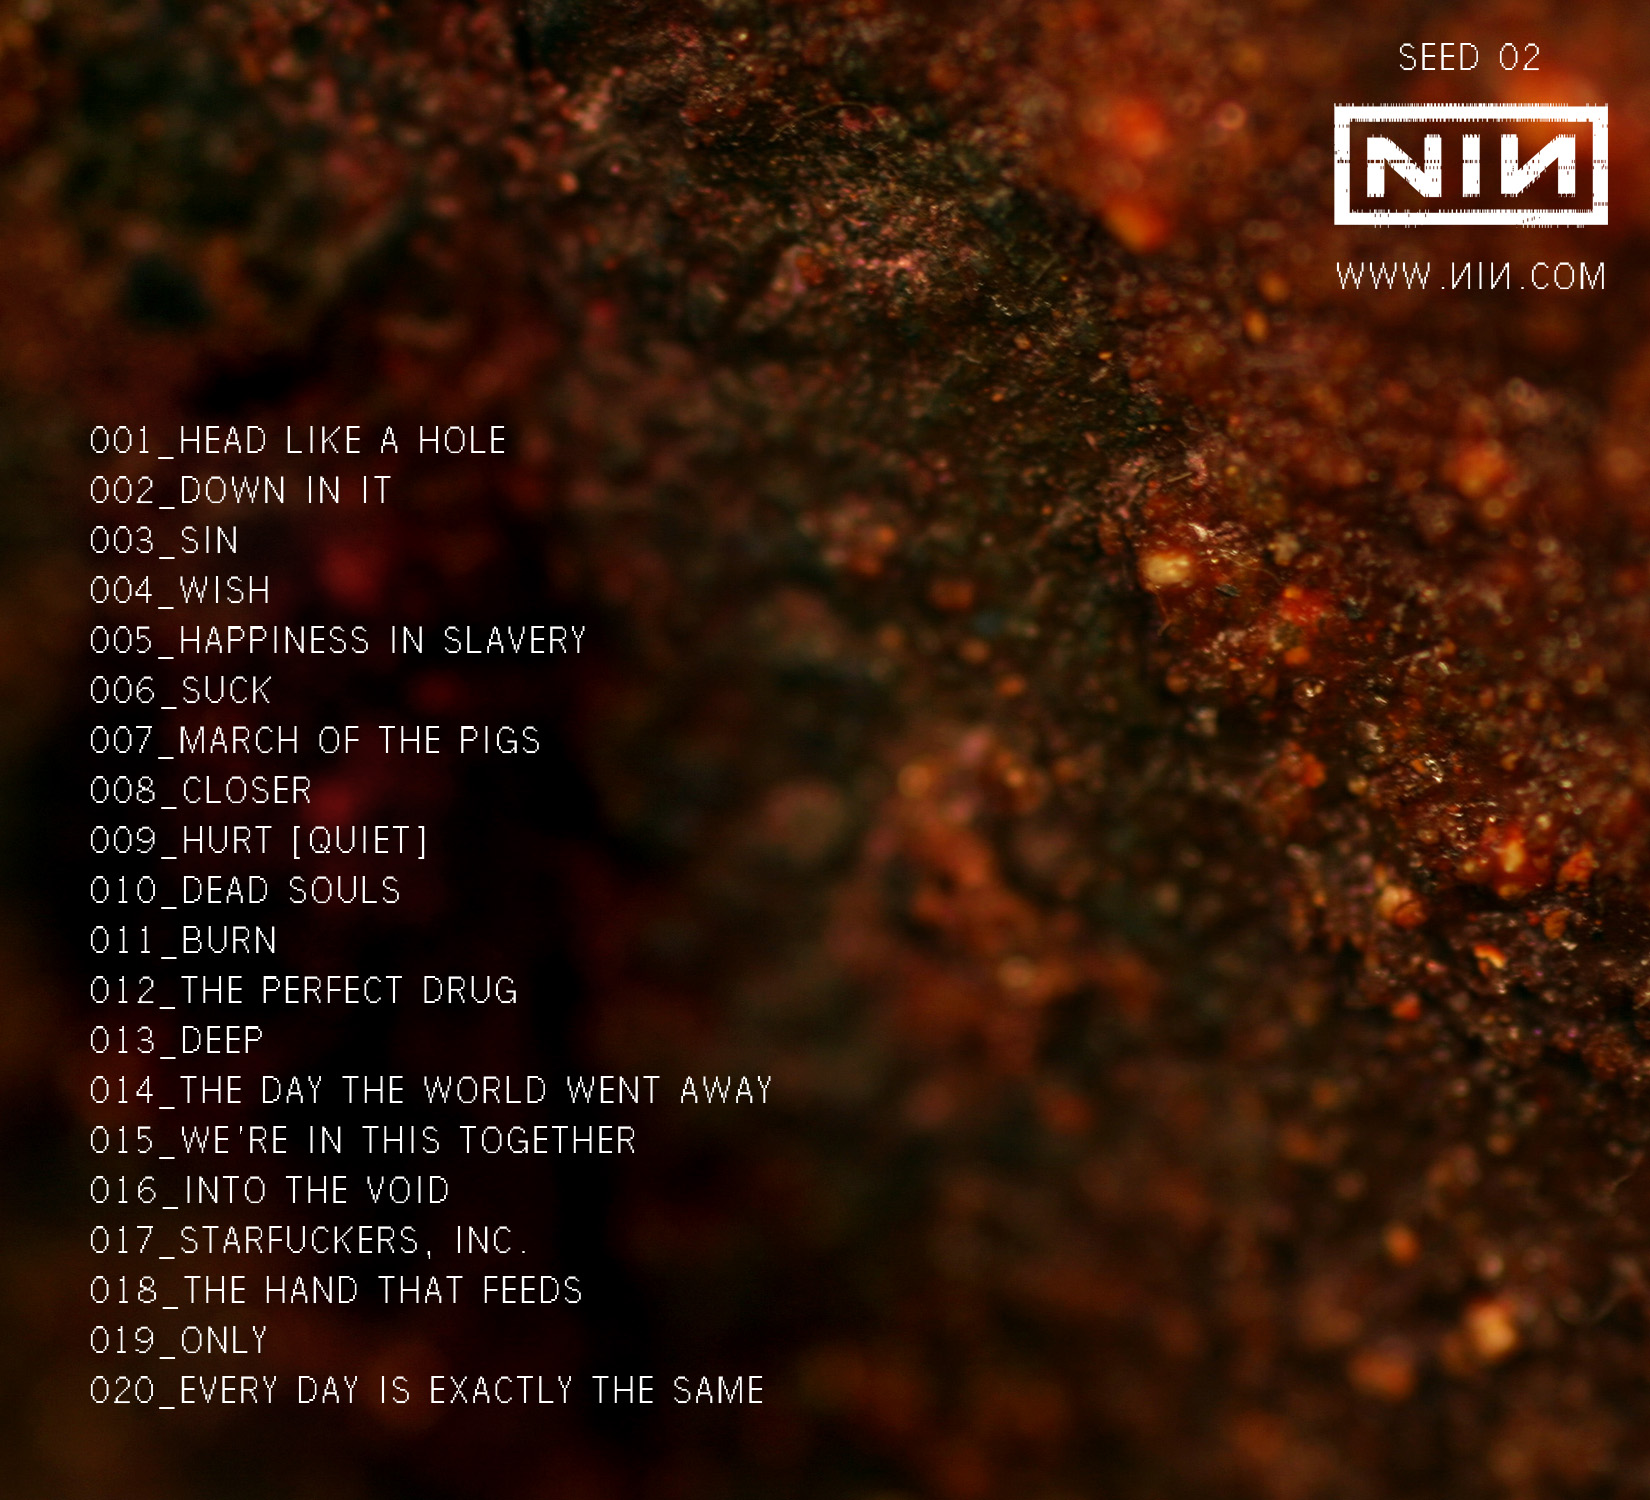 Nine Inch Nails Megathread 2 - Redemption - - General Discussion - Forum